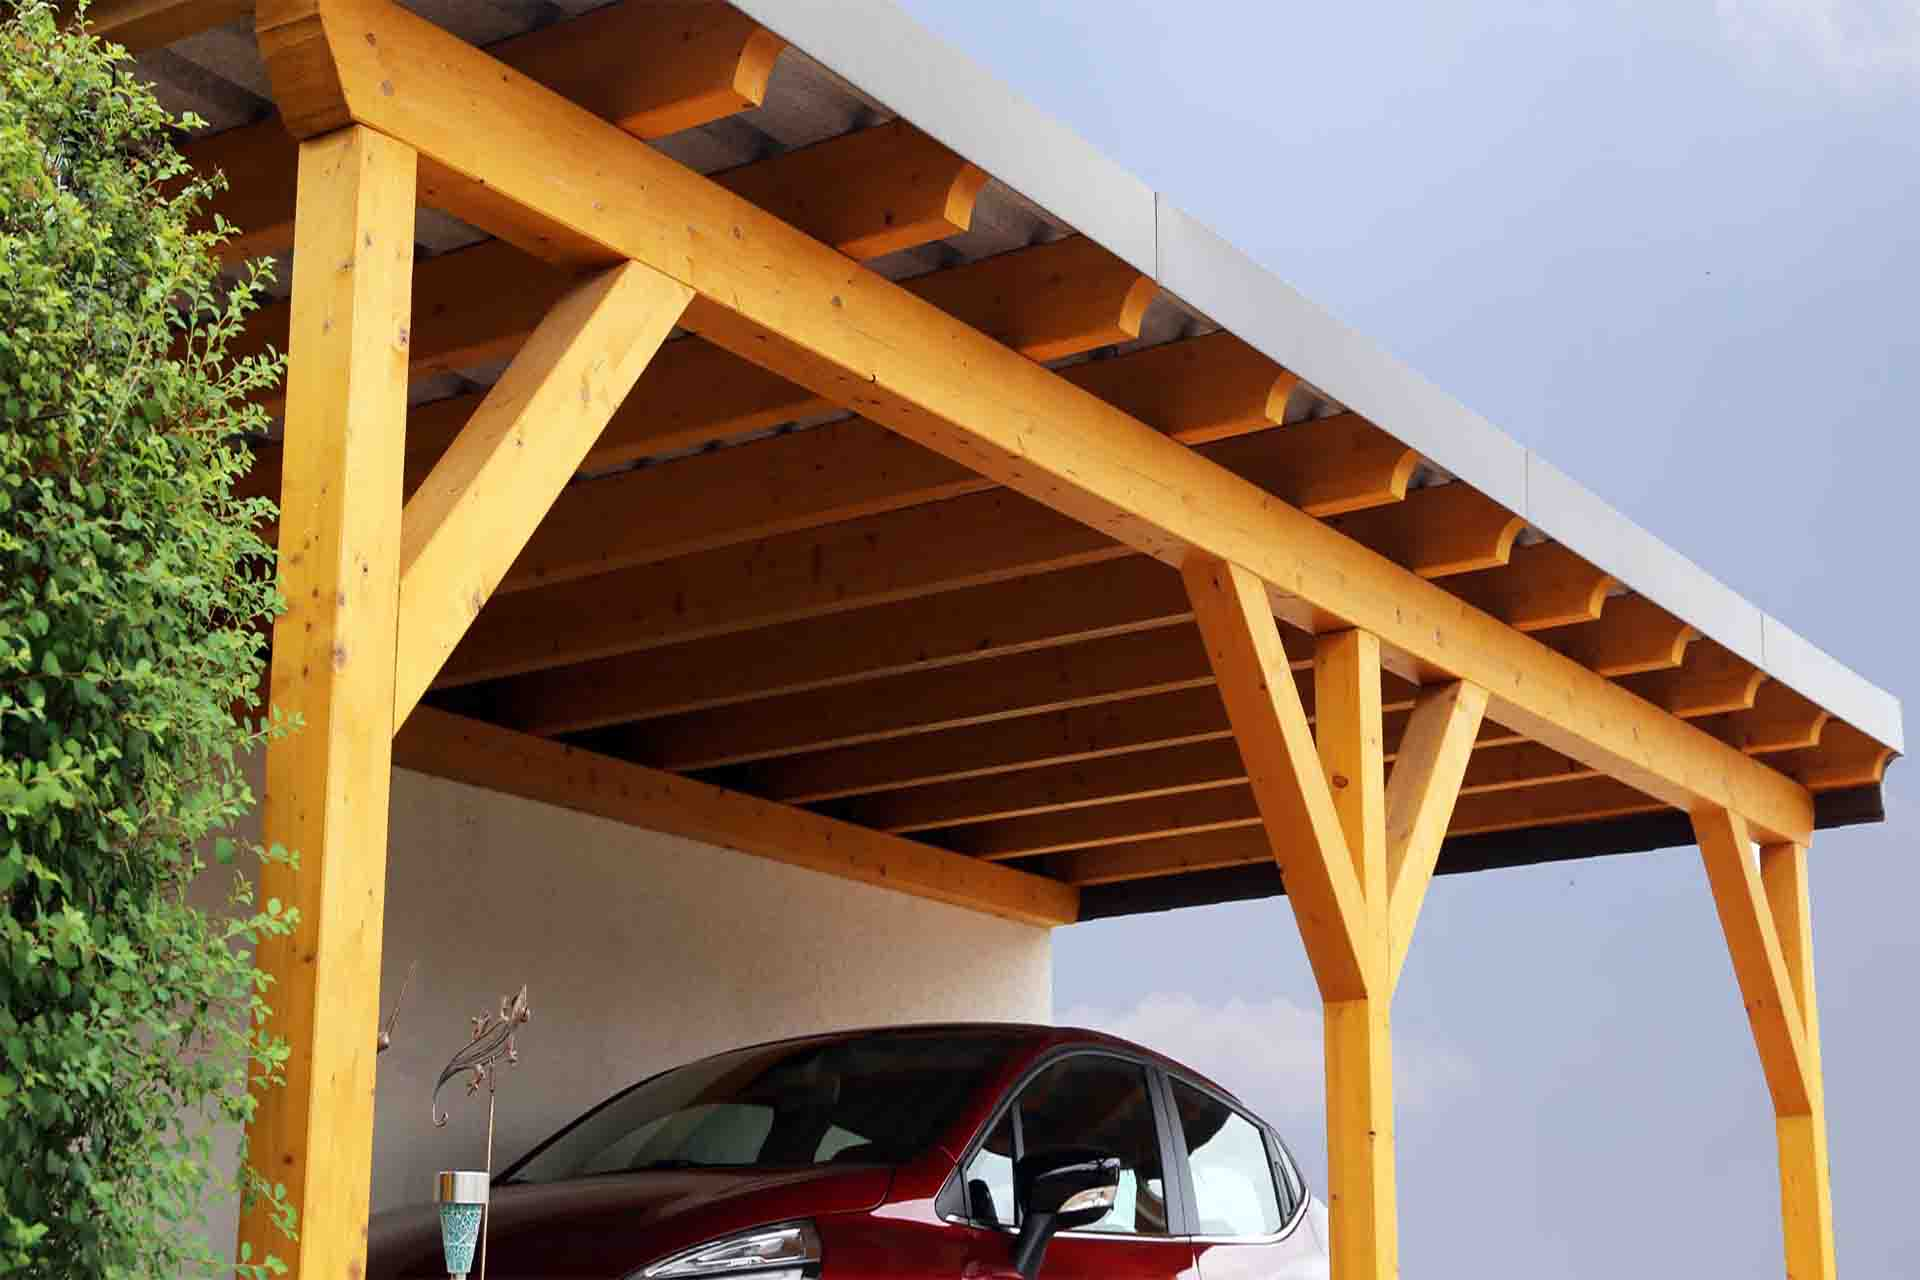 How Much Does A Carport Cost To Build 2022